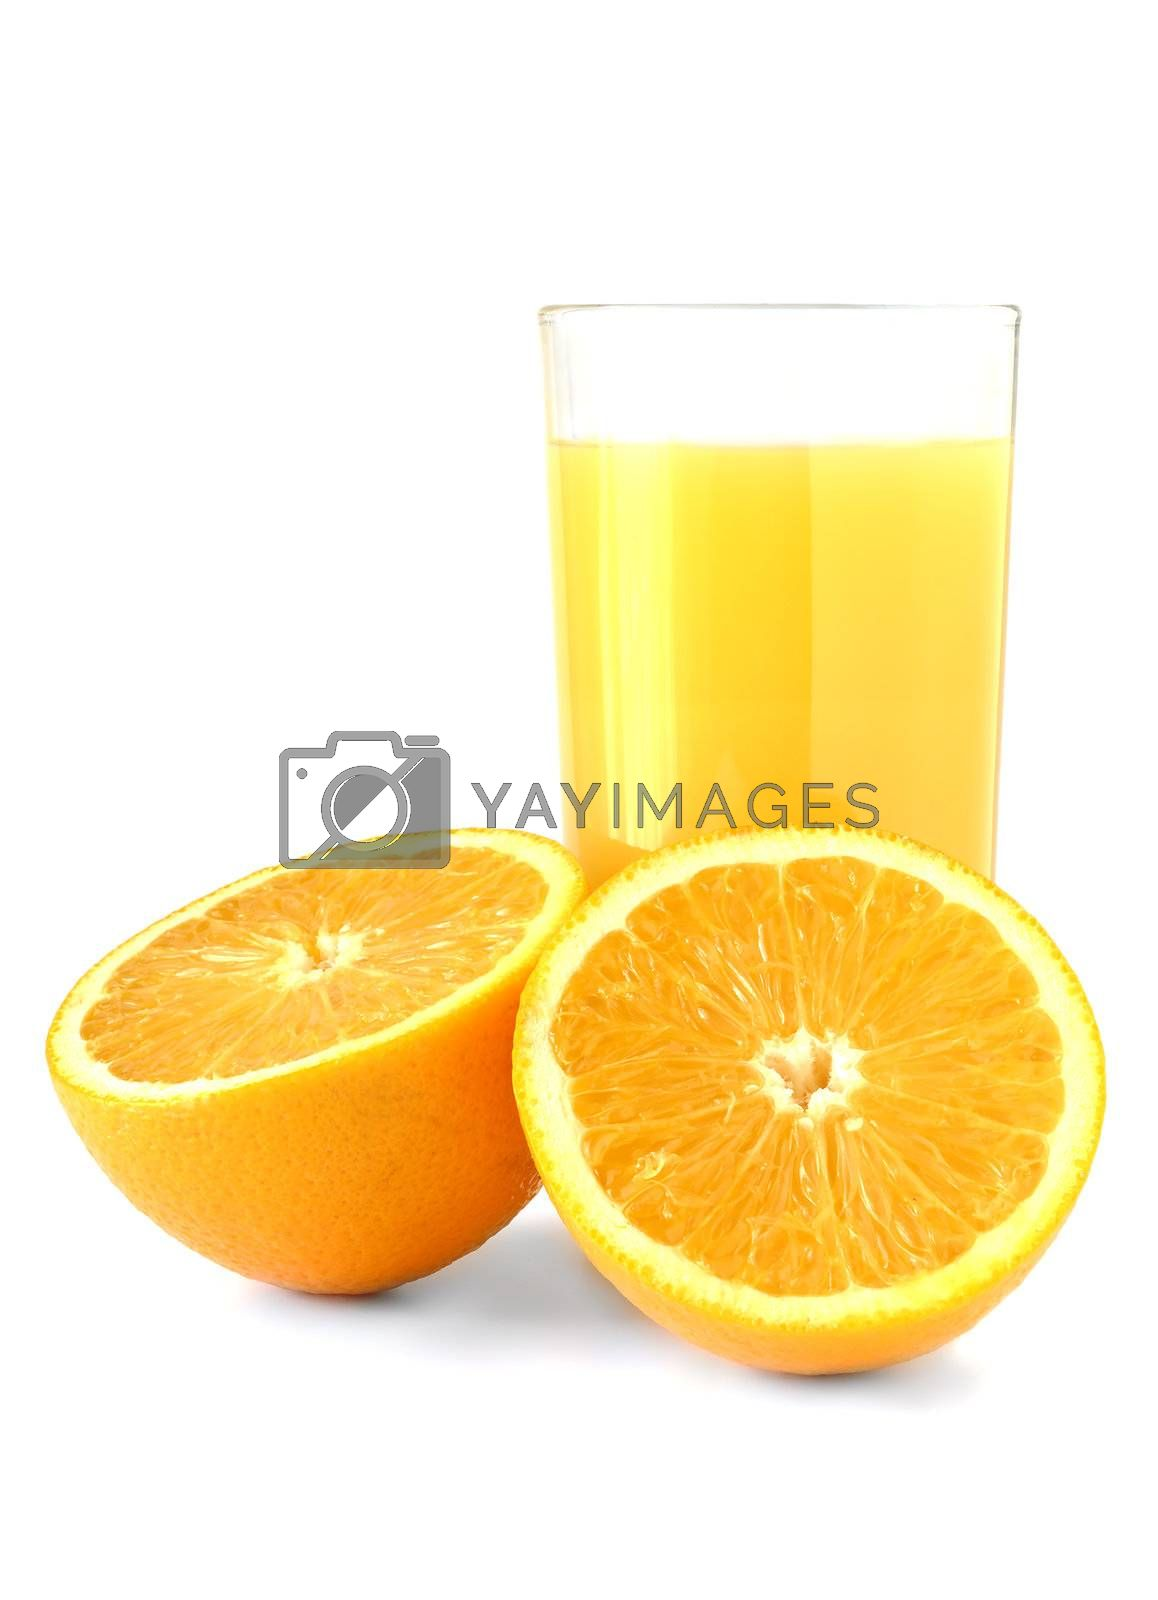 glass of fresh orange juice set against white with two halves of orange